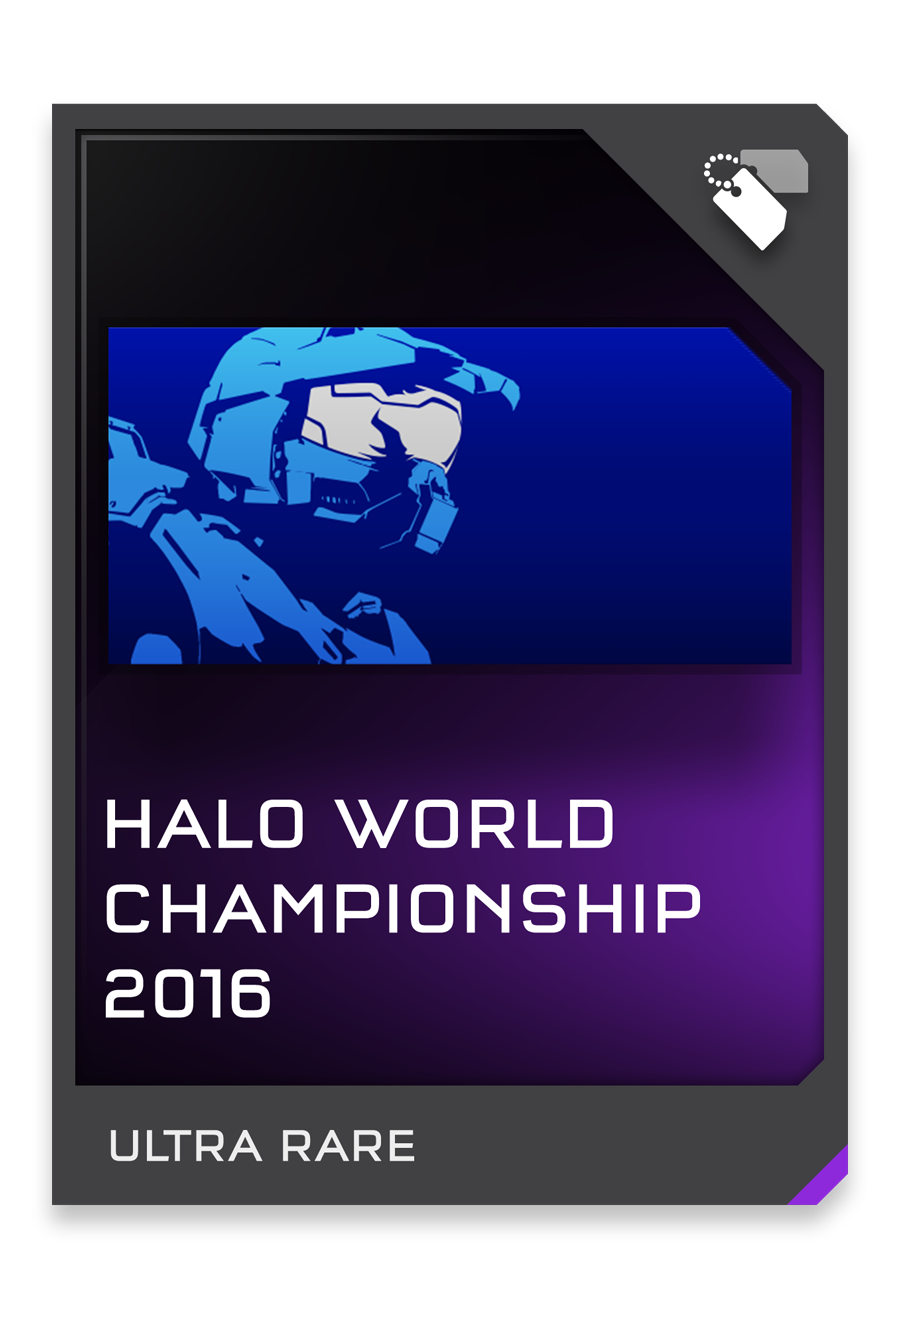 Halo-5-Guardians-Challenger-REQ-Card-Emblem